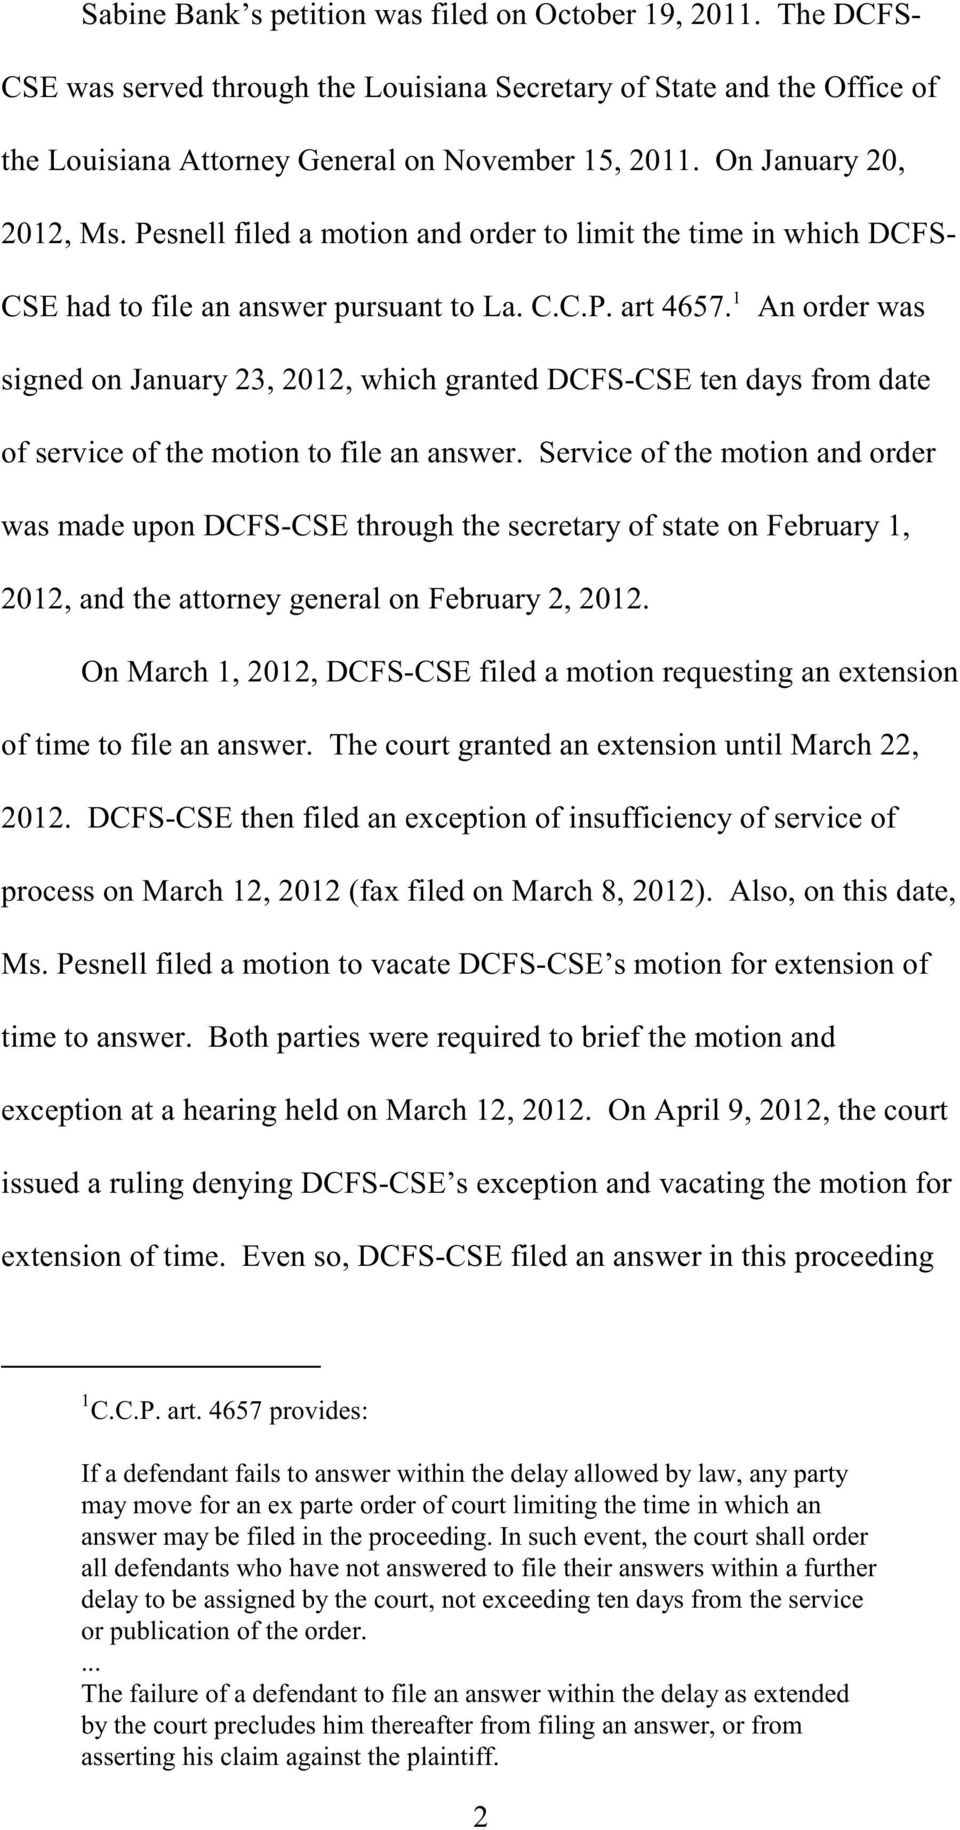 An order was signed on January 23, 2012, which granted DCFS-CSE ten days from date of service of the motion to file an answer.